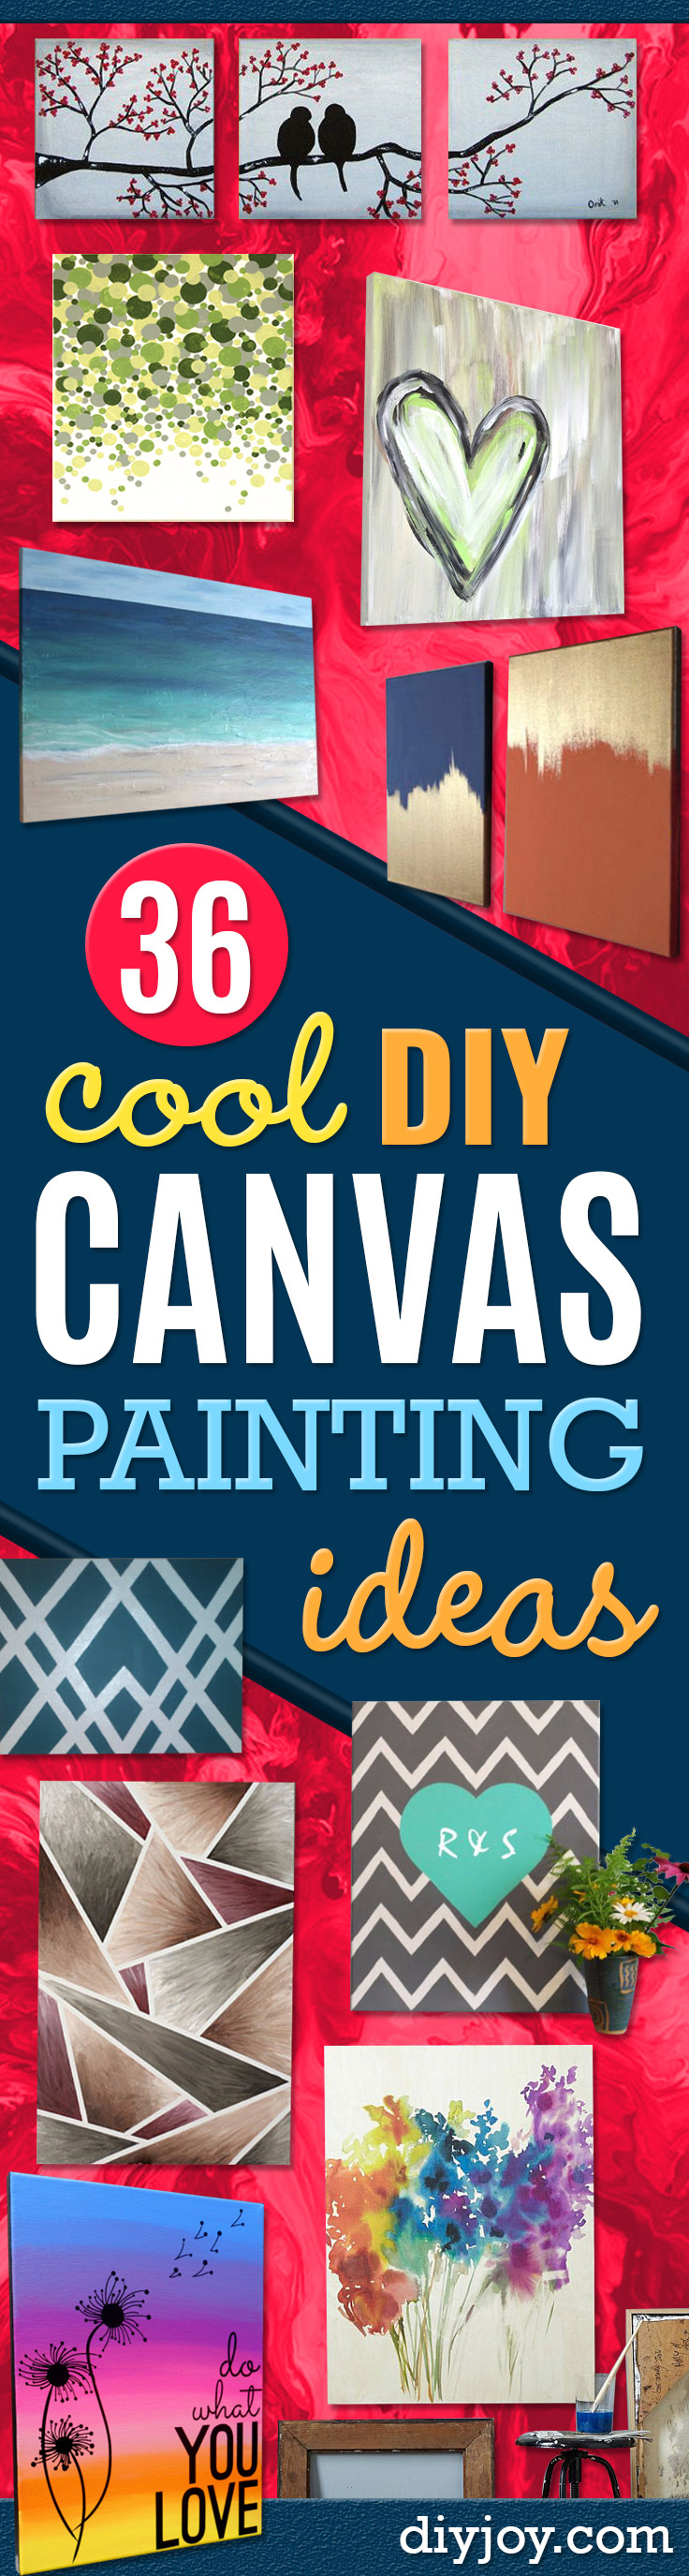 Painting Ideas - 36 Easy DIY Canvas Paintings to Make Art ...